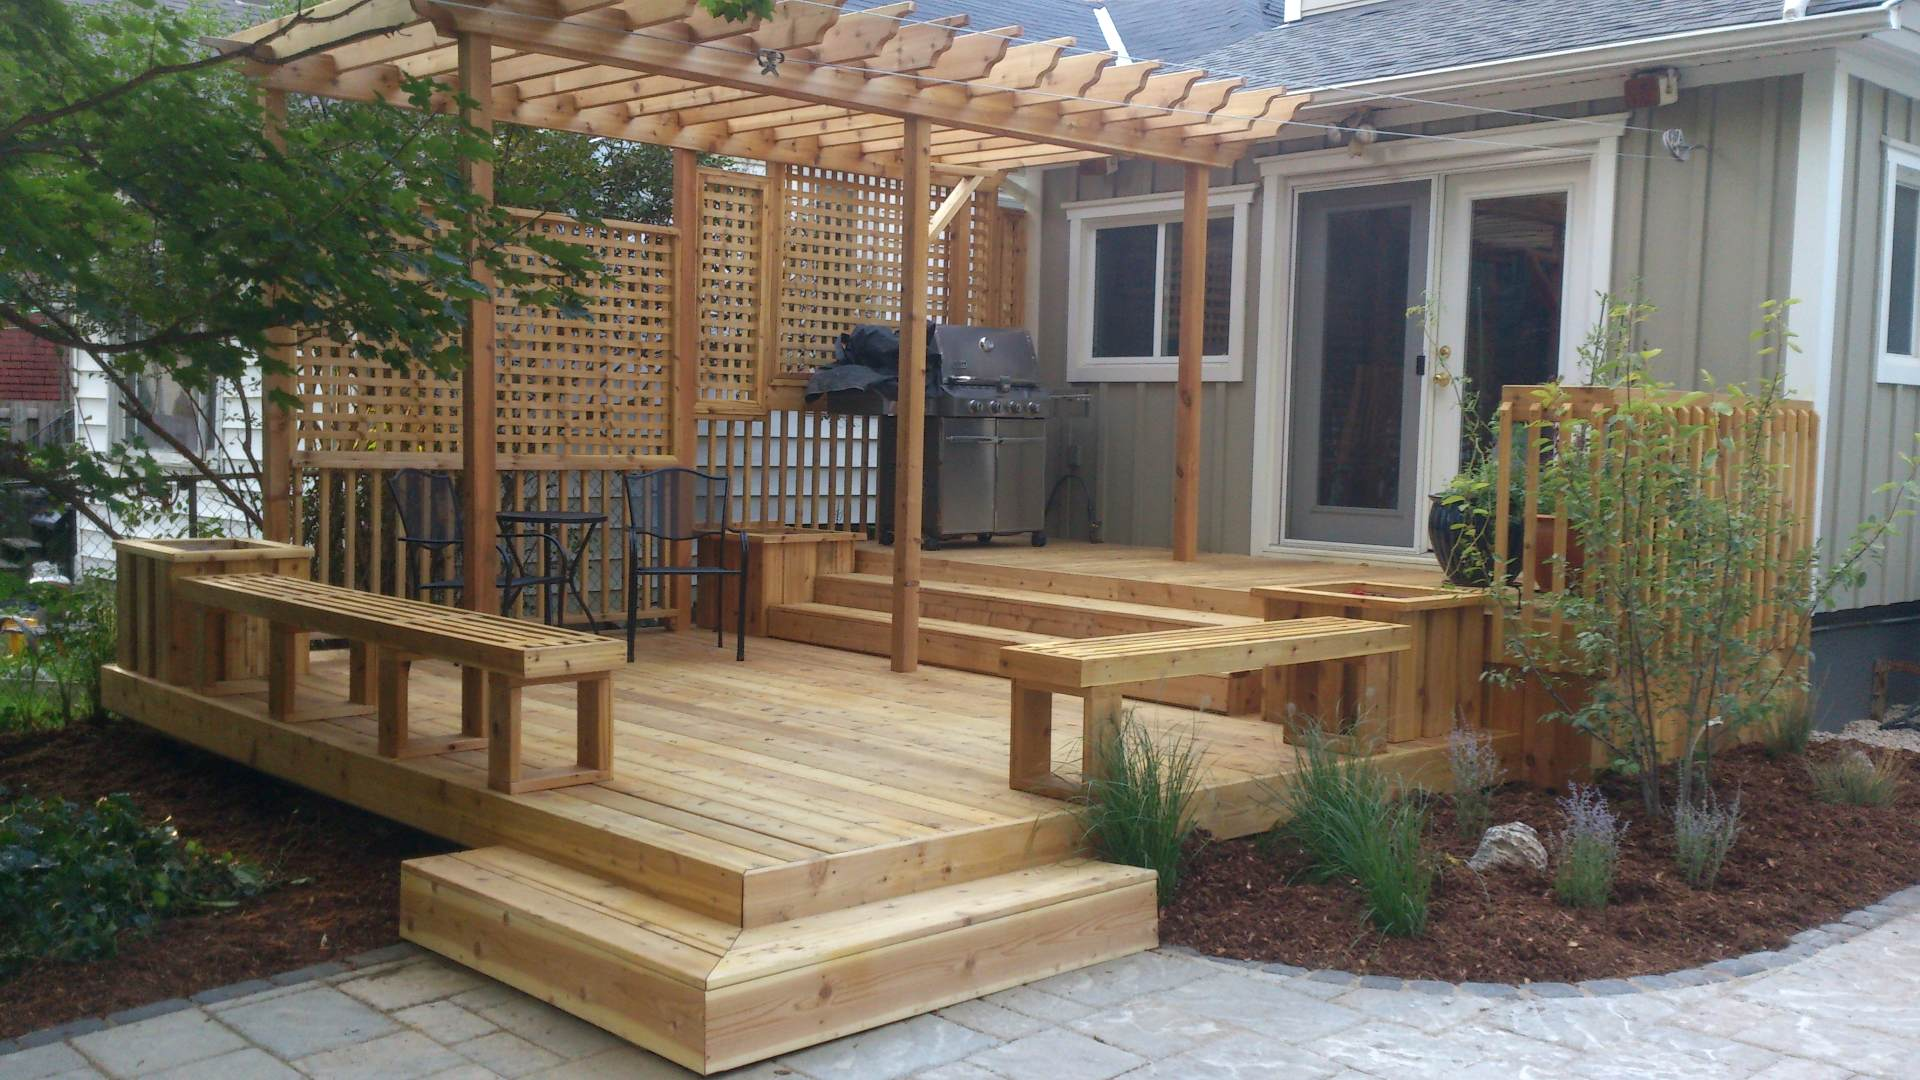 New deck and backyard renovation: a landscaping, hardscaping and woodwork project in London Ontario.